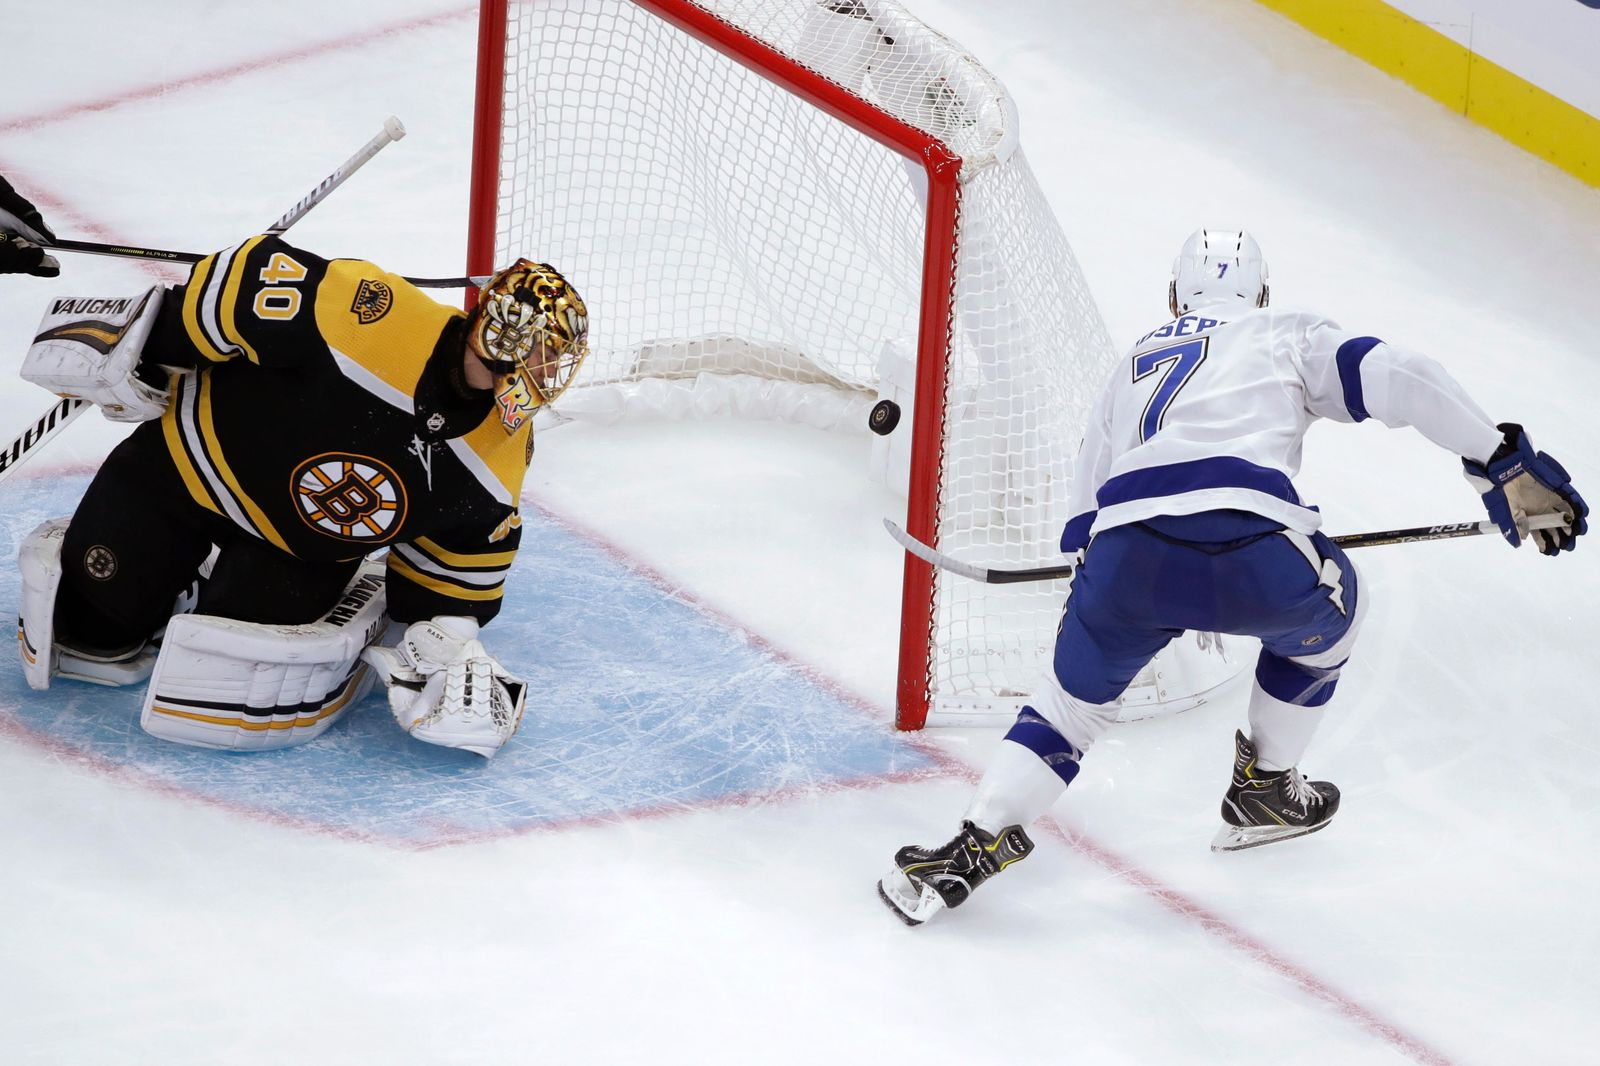 Tampa Bay Lightning right wing Mathieu Joseph (7) scores against Boston Bruins goaltender Tuukka Rask (40) during the second period of an NHL hockey game Thursday, Oct. 17, 2019, in Boston. (AP Photo/Elise Amendola)